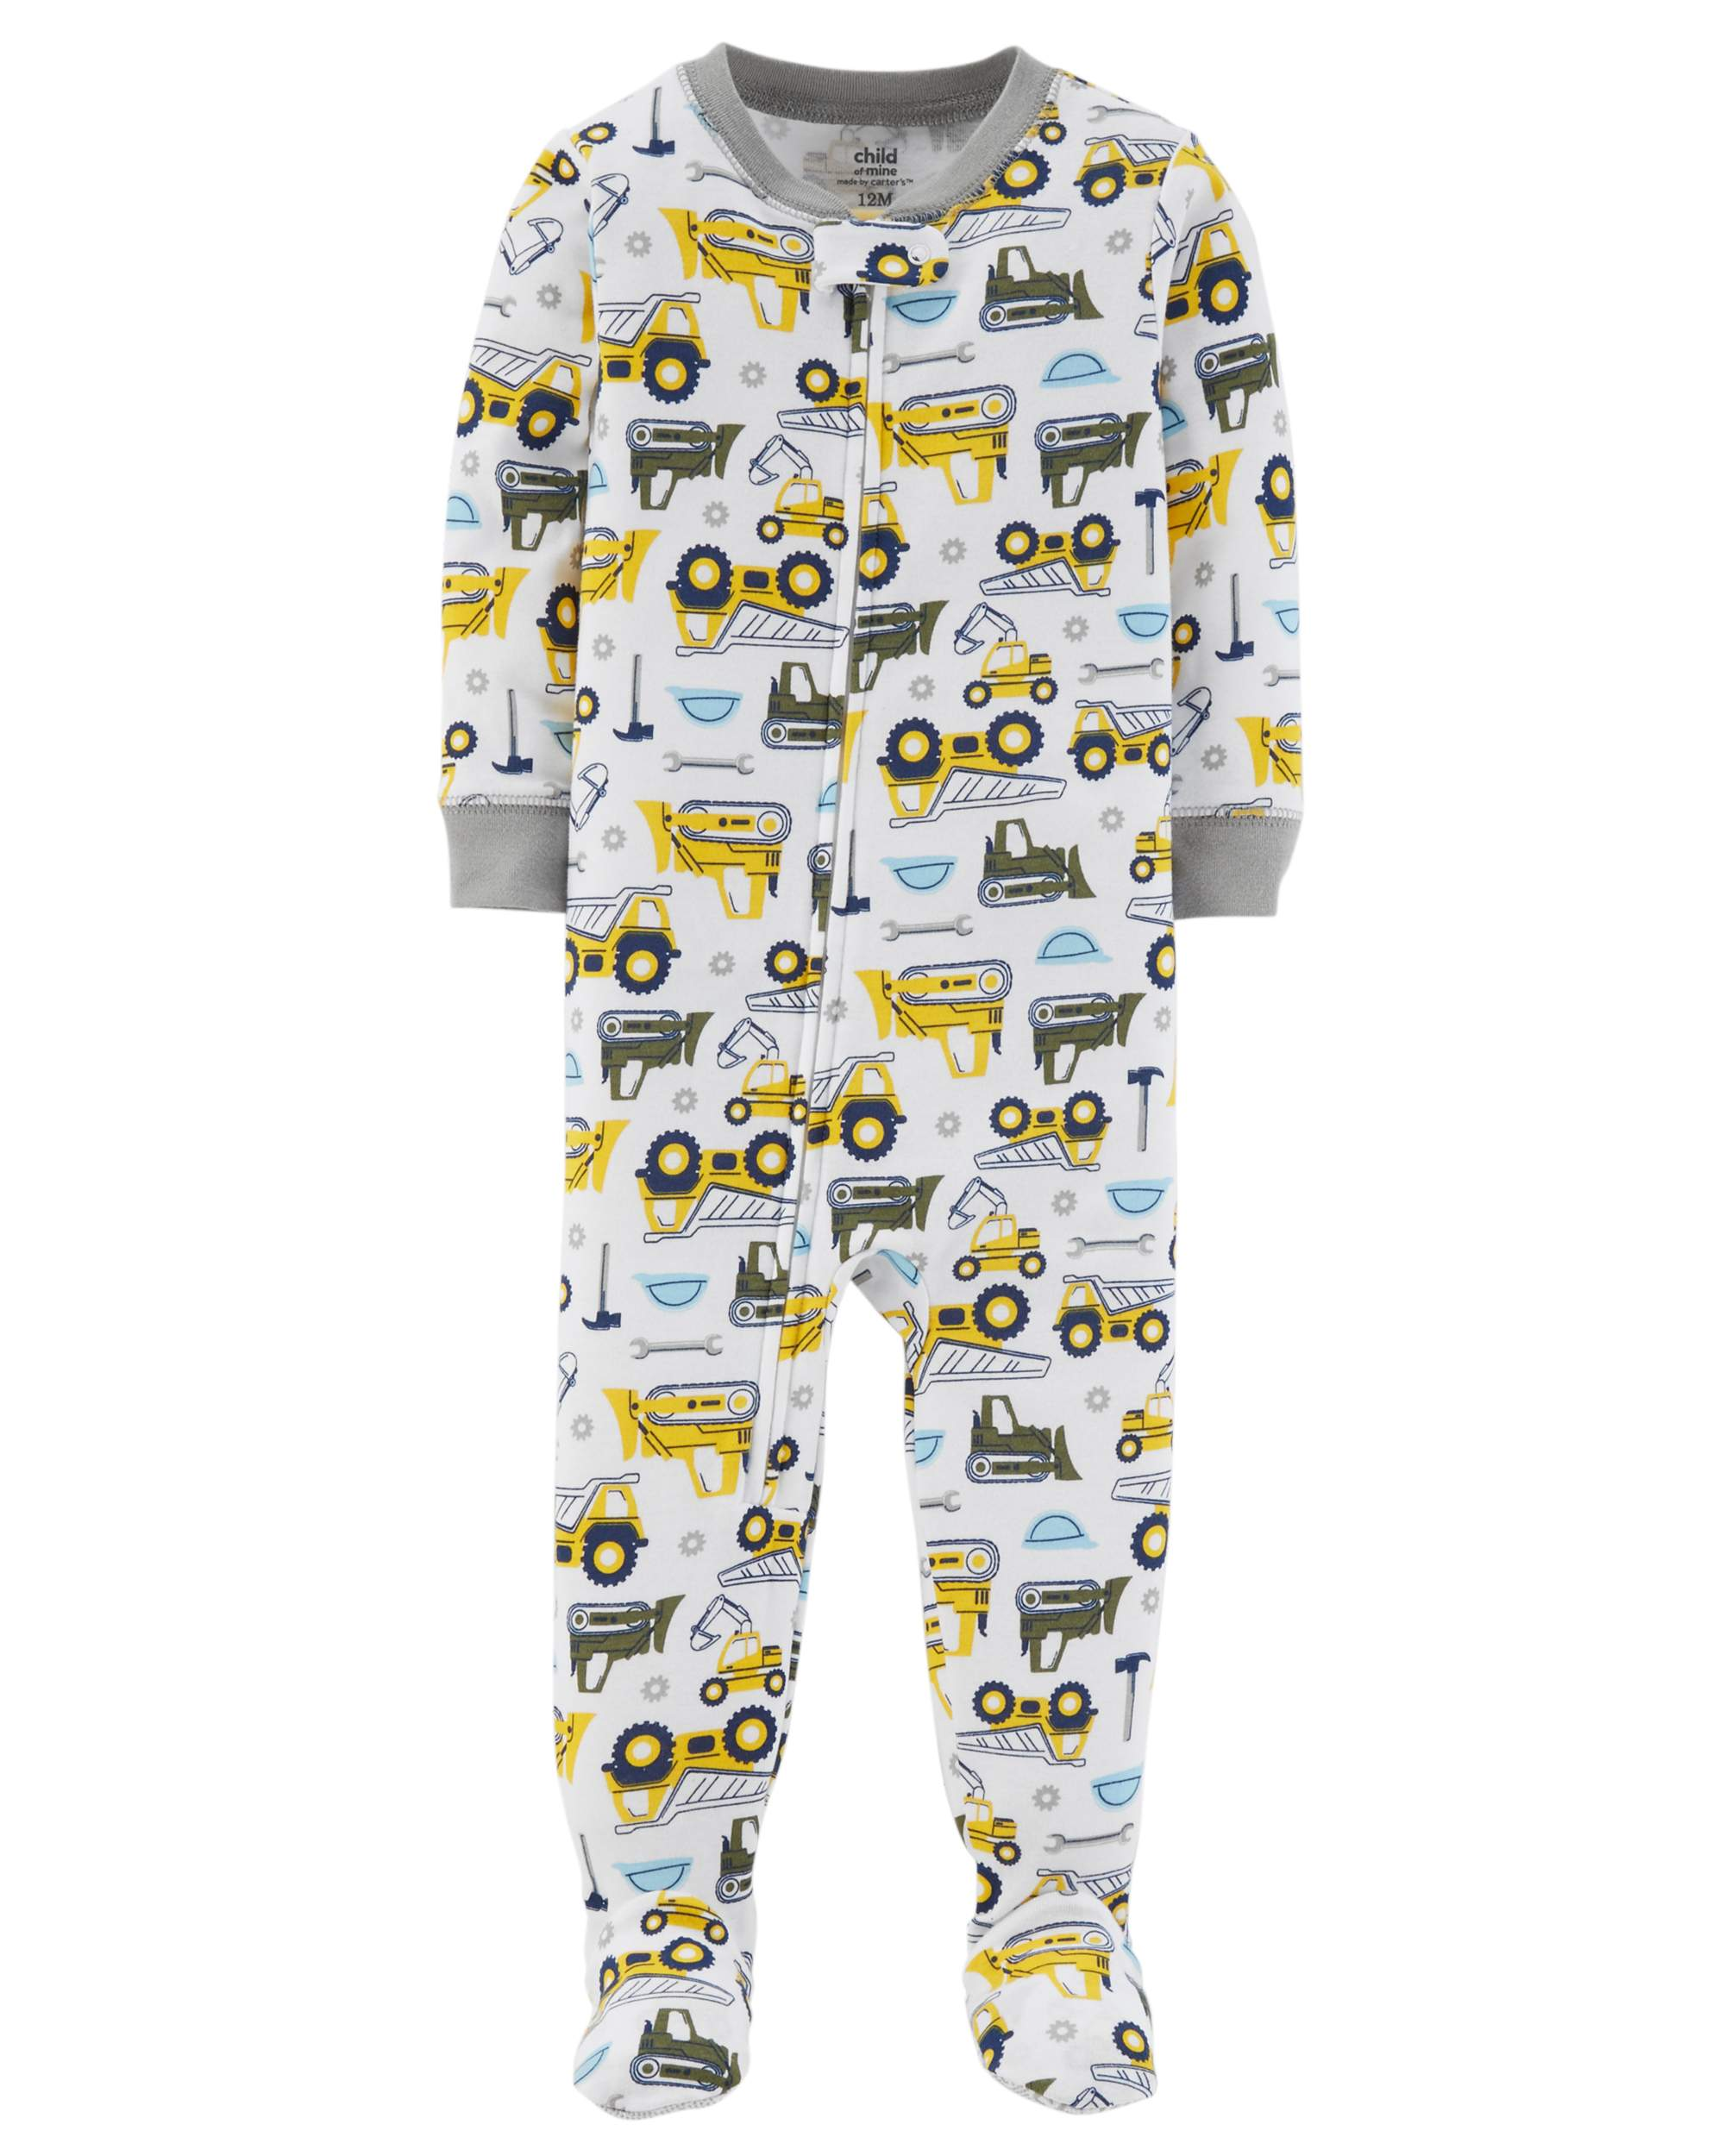 95c646820 Child of Mine by Carter's - Child of Mine by Carter's Baby boy one piece  footed pajamas - Walmart.com